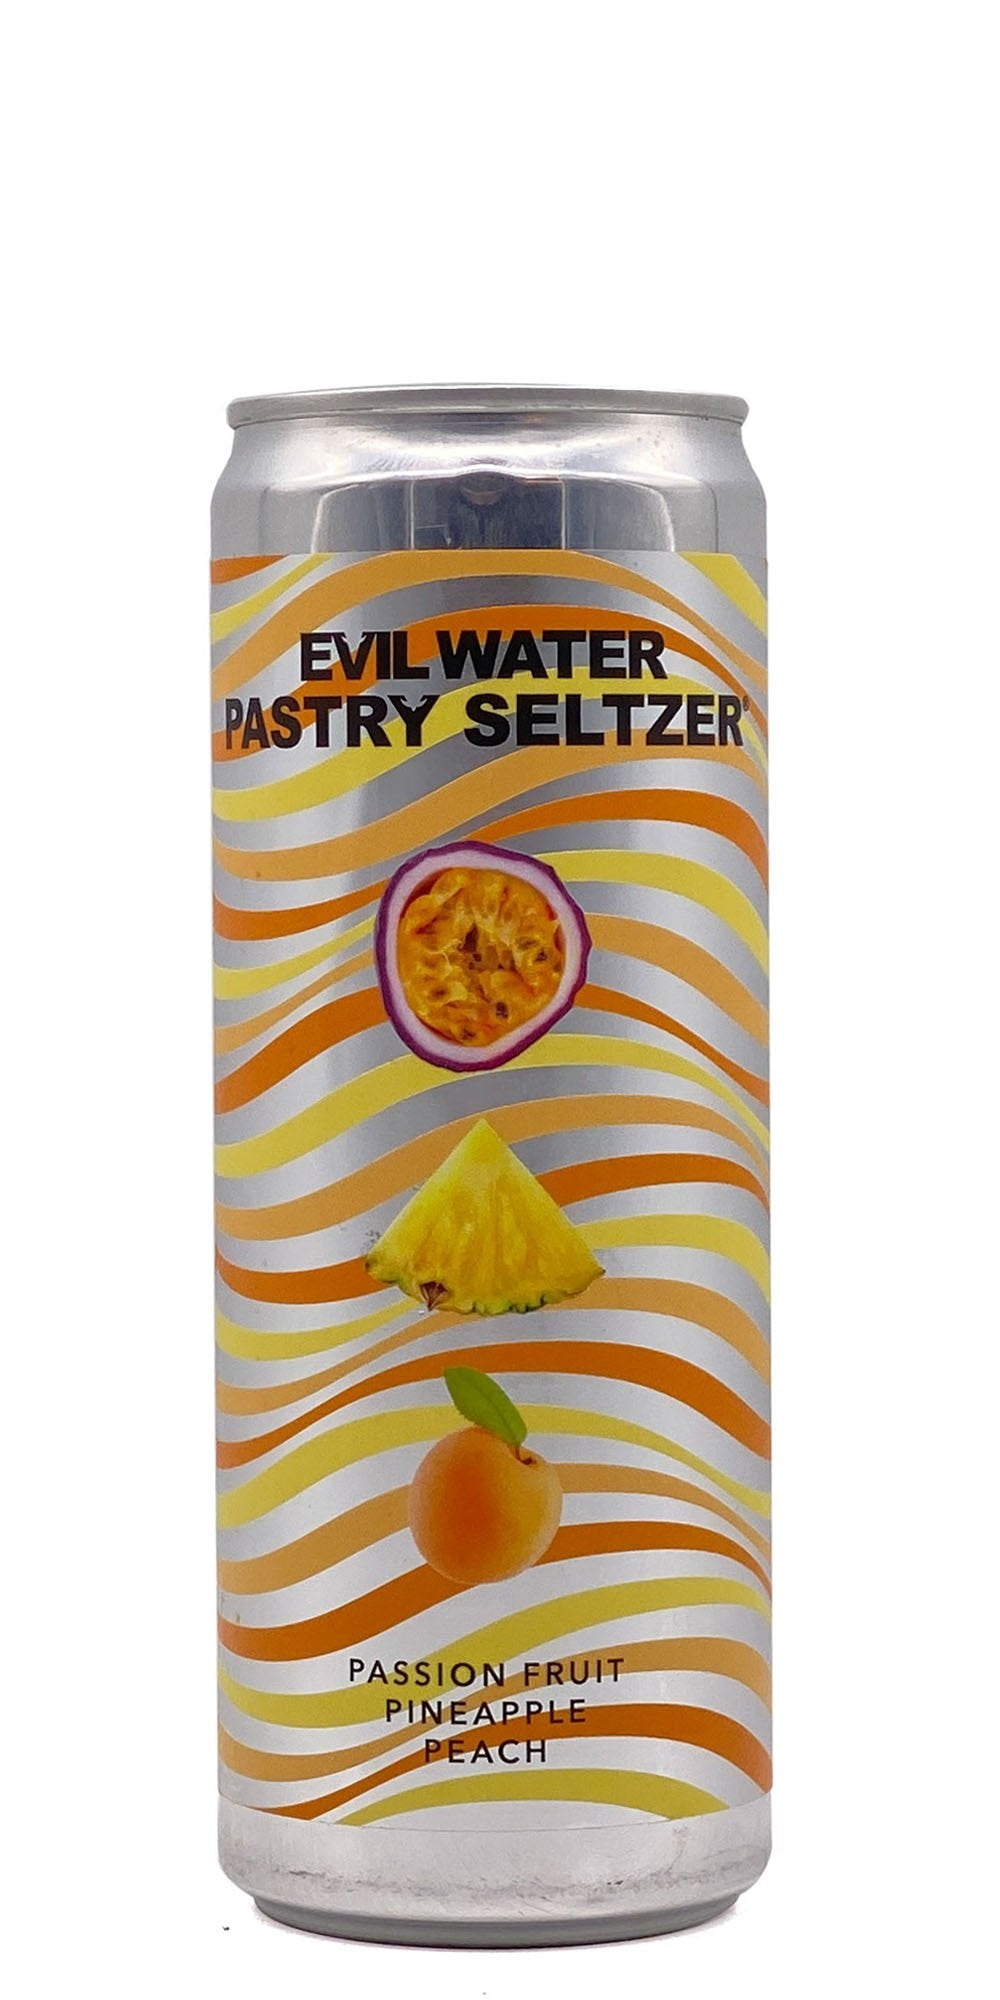 Evil Water - Pastry Seltzer: Passionfruit, Pineapple, Peach